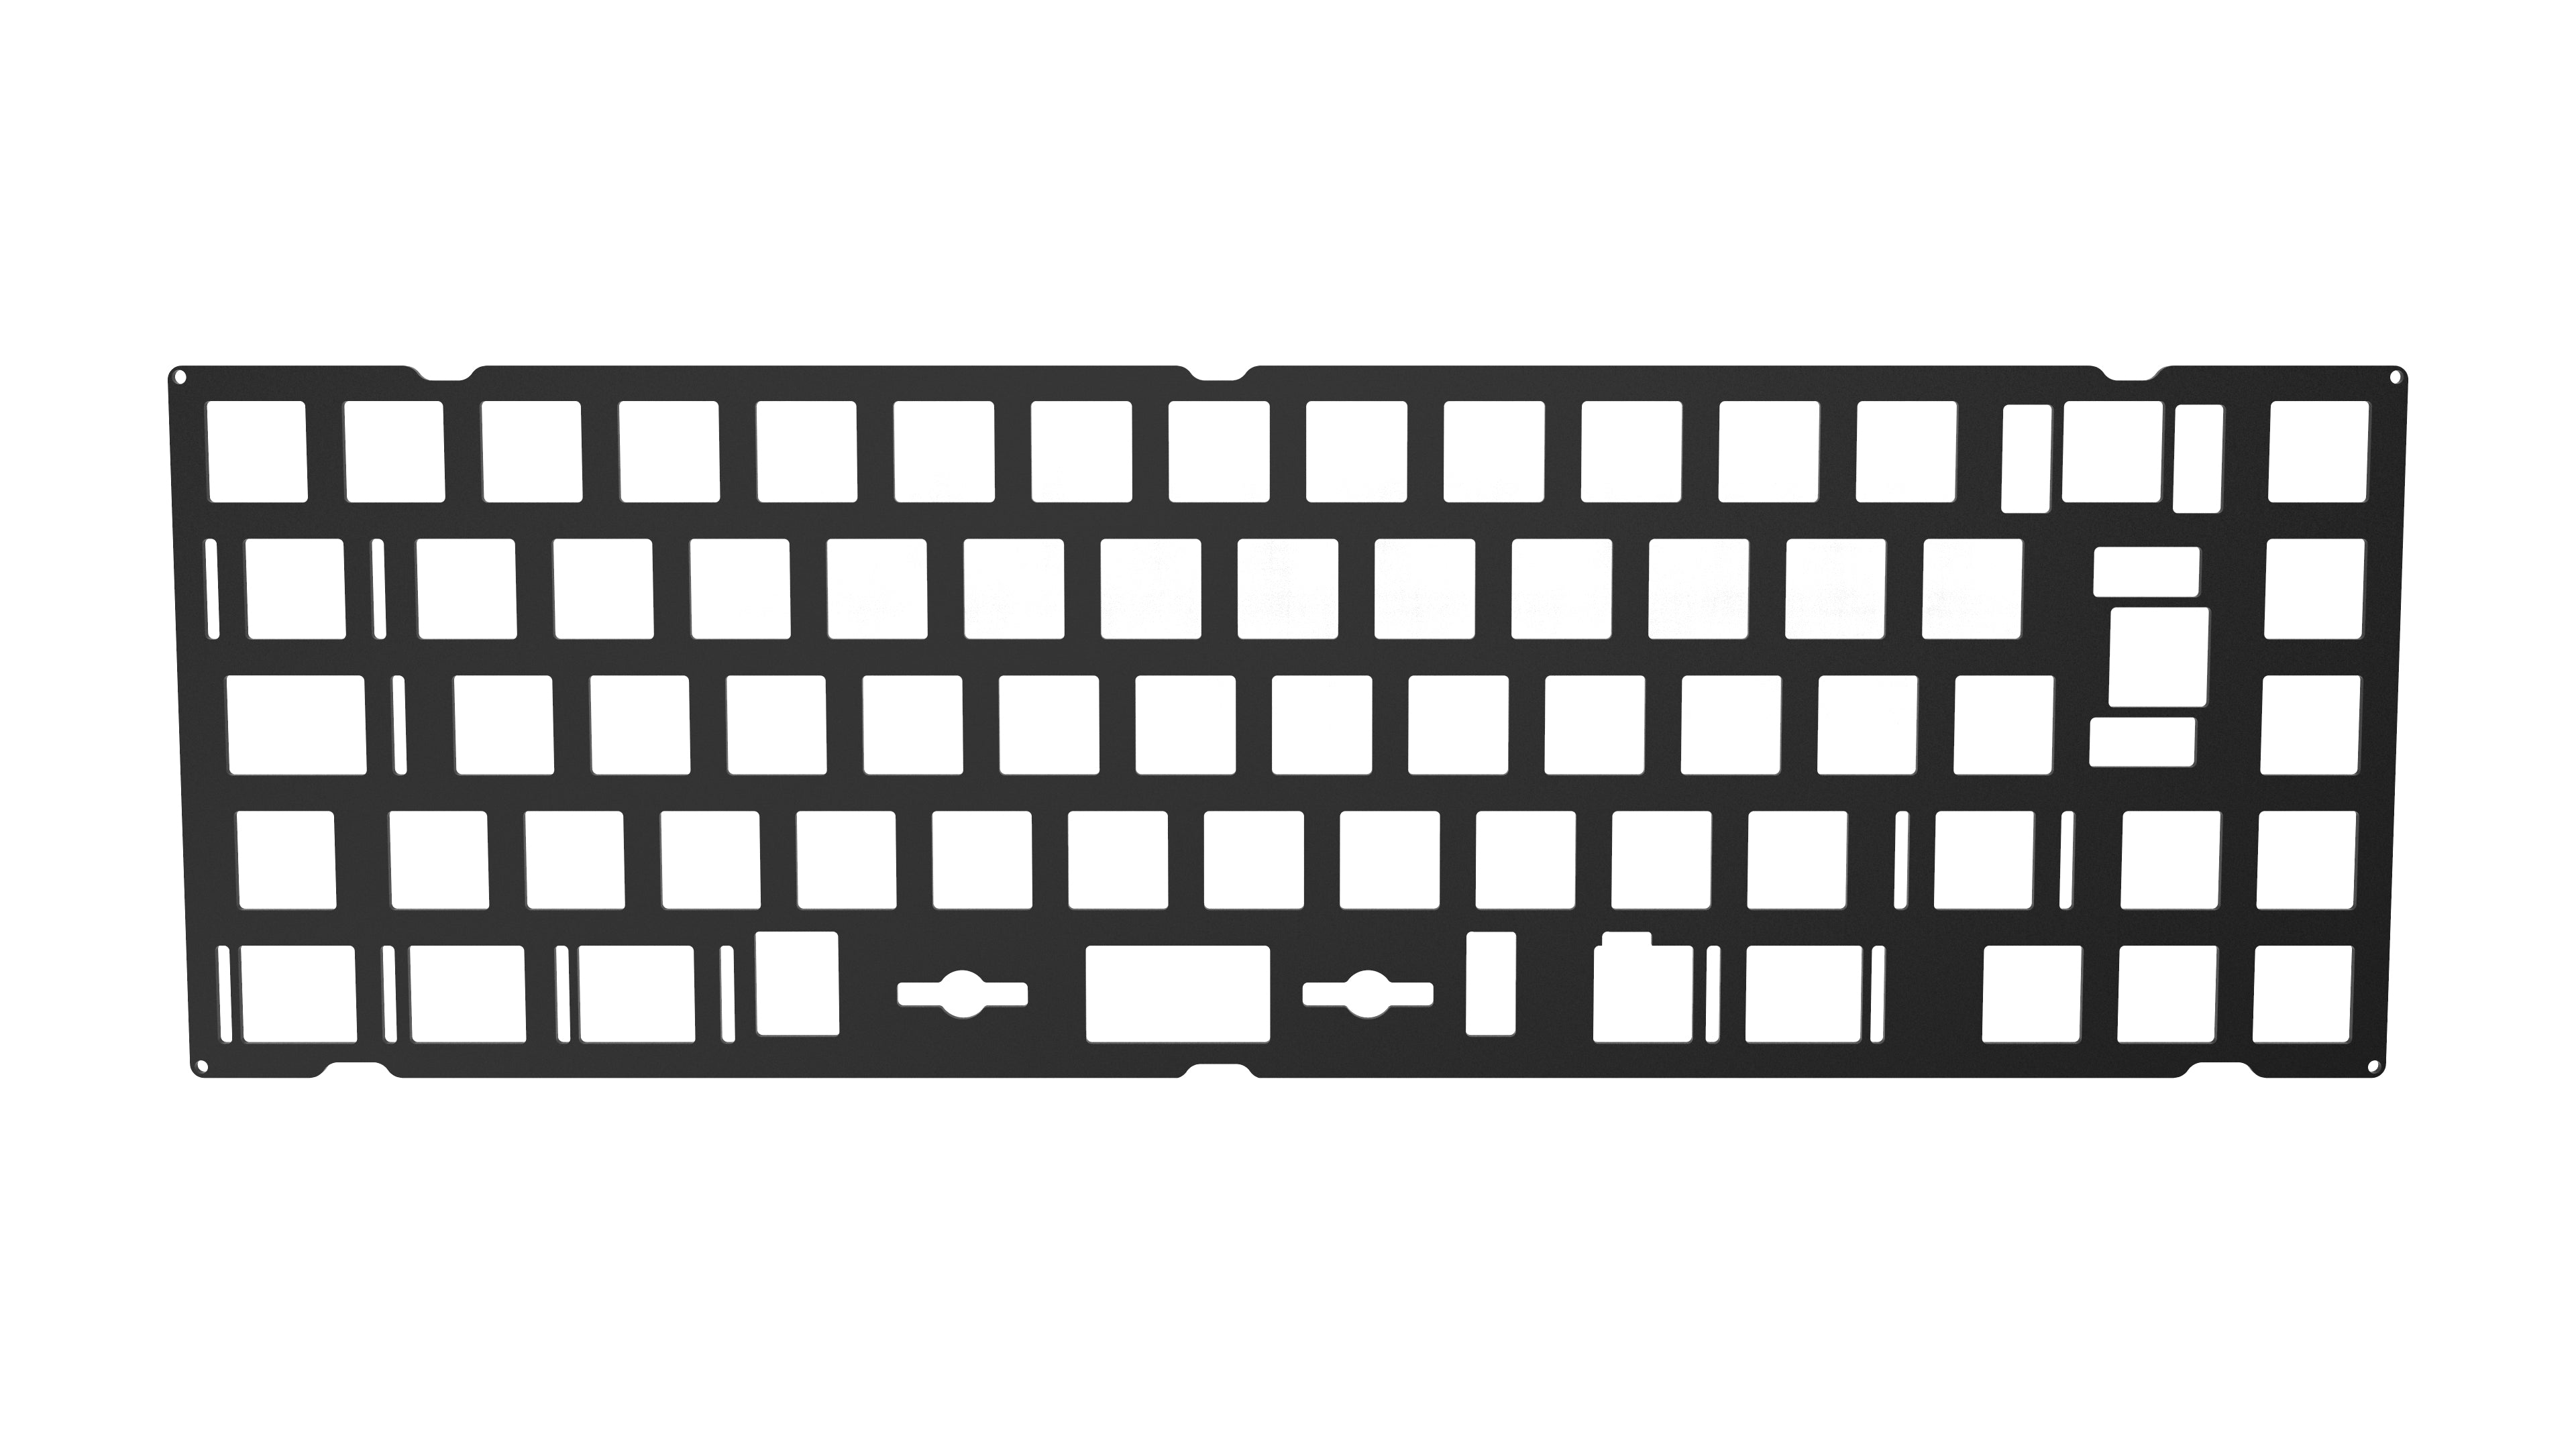 [GB] Angel 65% Extra Parts